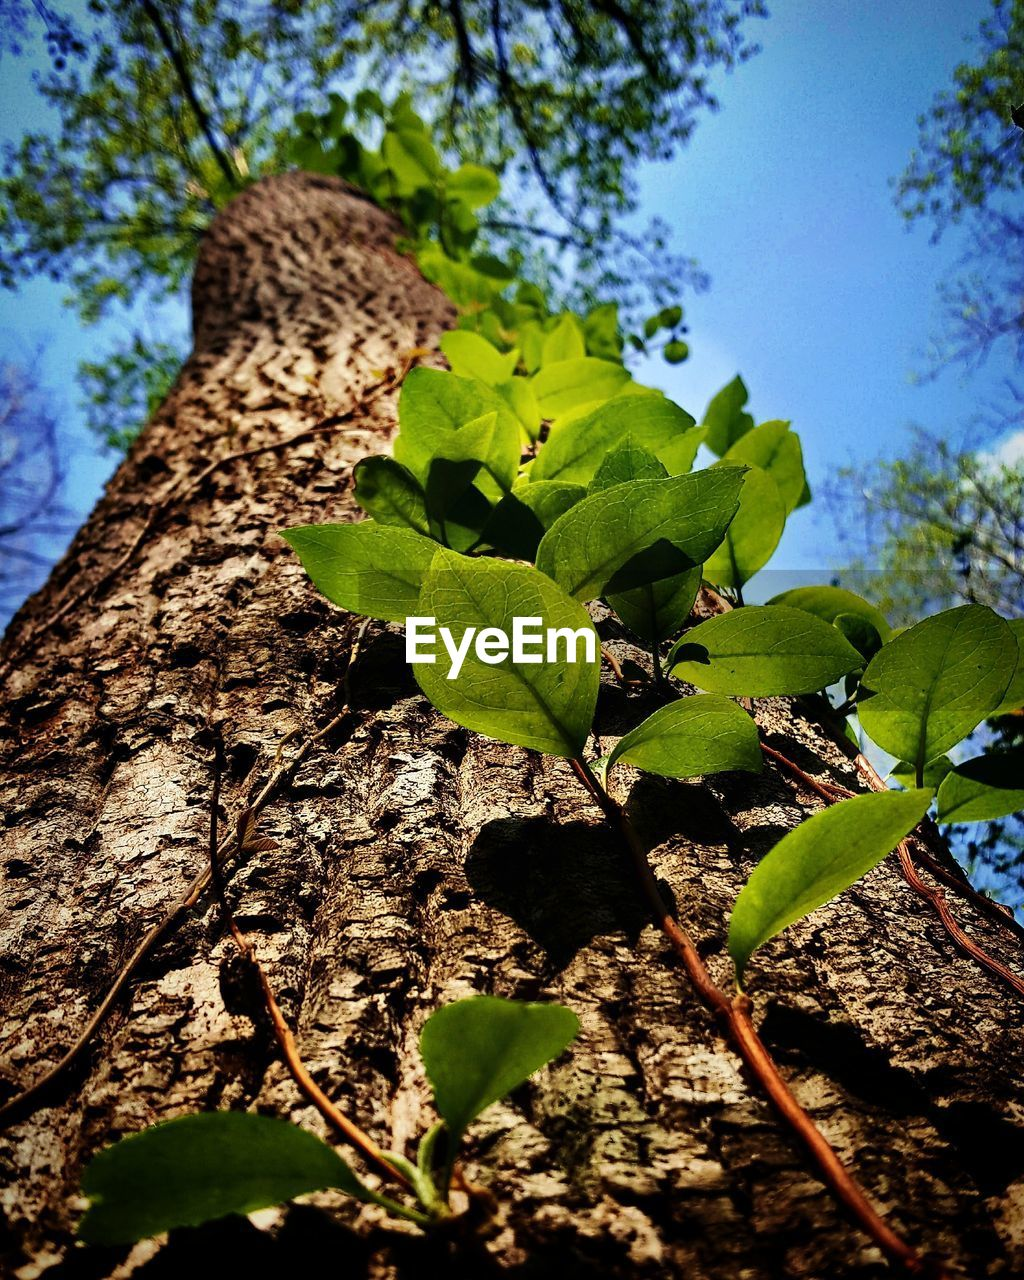 leaf, plant part, plant, tree, growth, nature, green color, day, beauty in nature, no people, tree trunk, close-up, trunk, sunlight, low angle view, outdoors, selective focus, branch, sky, focus on foreground, leaves